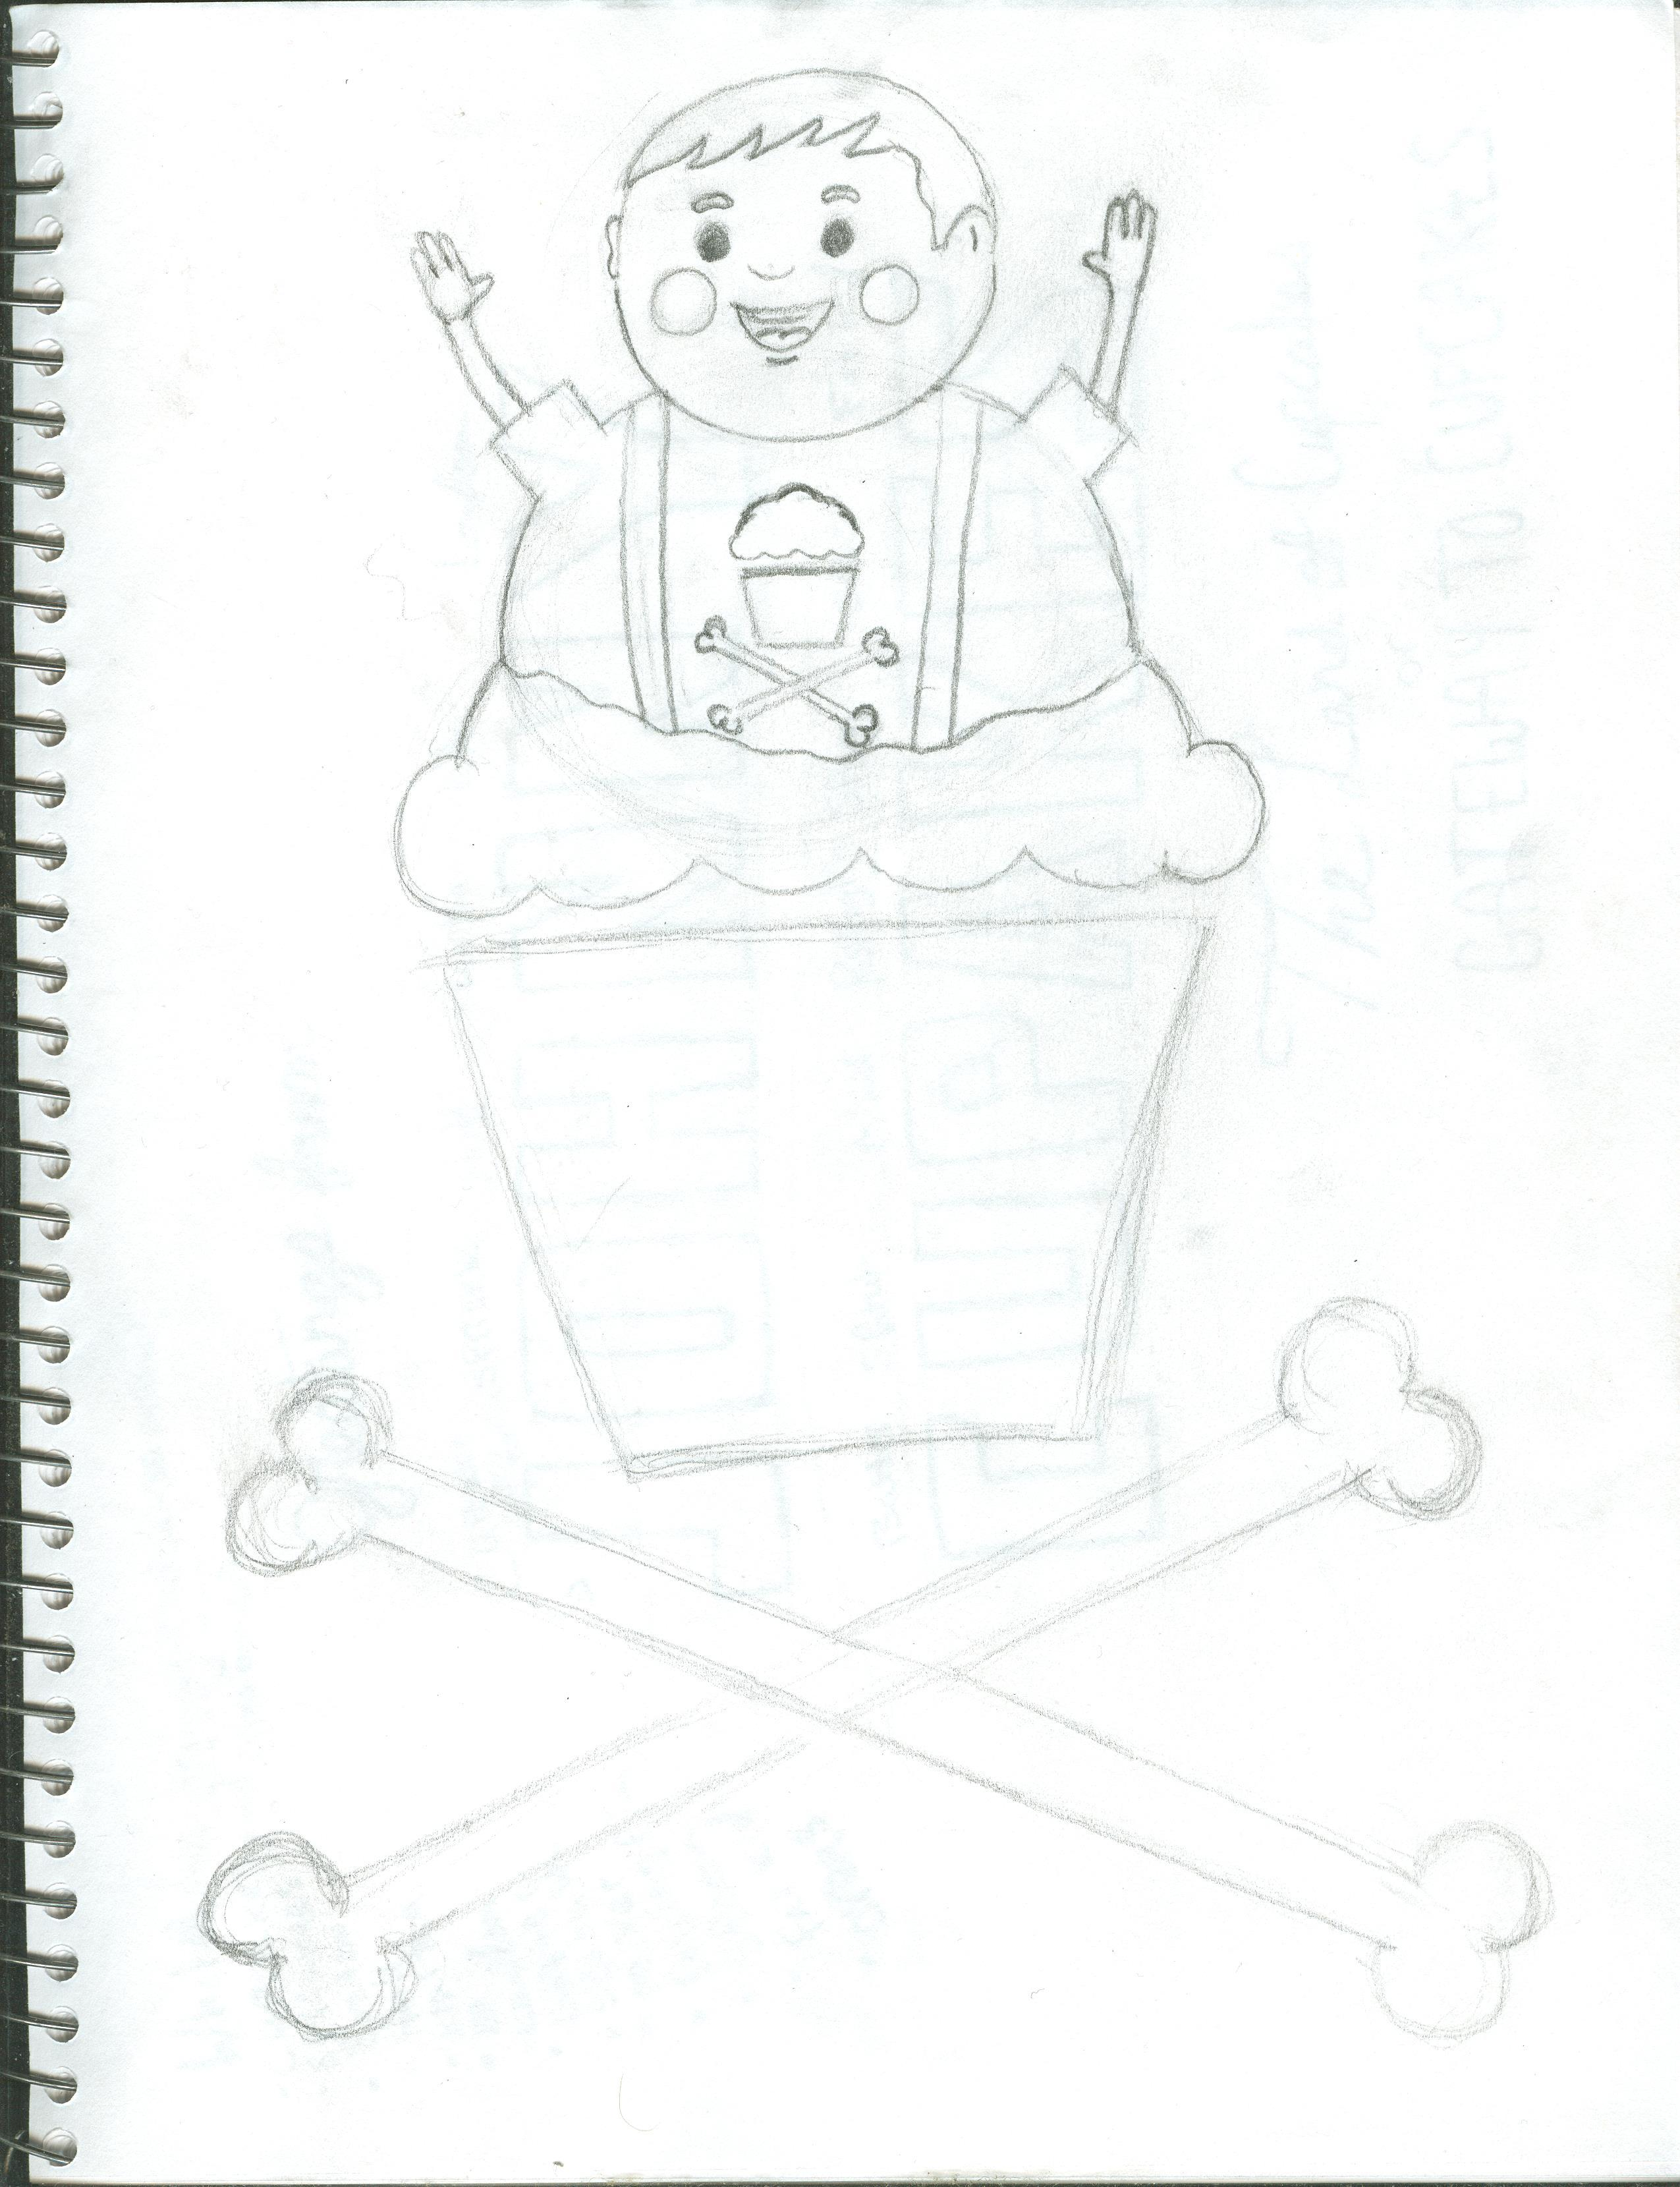 Justin McLaughlin's take on Johnny Cupcakes. - image 6 - student project